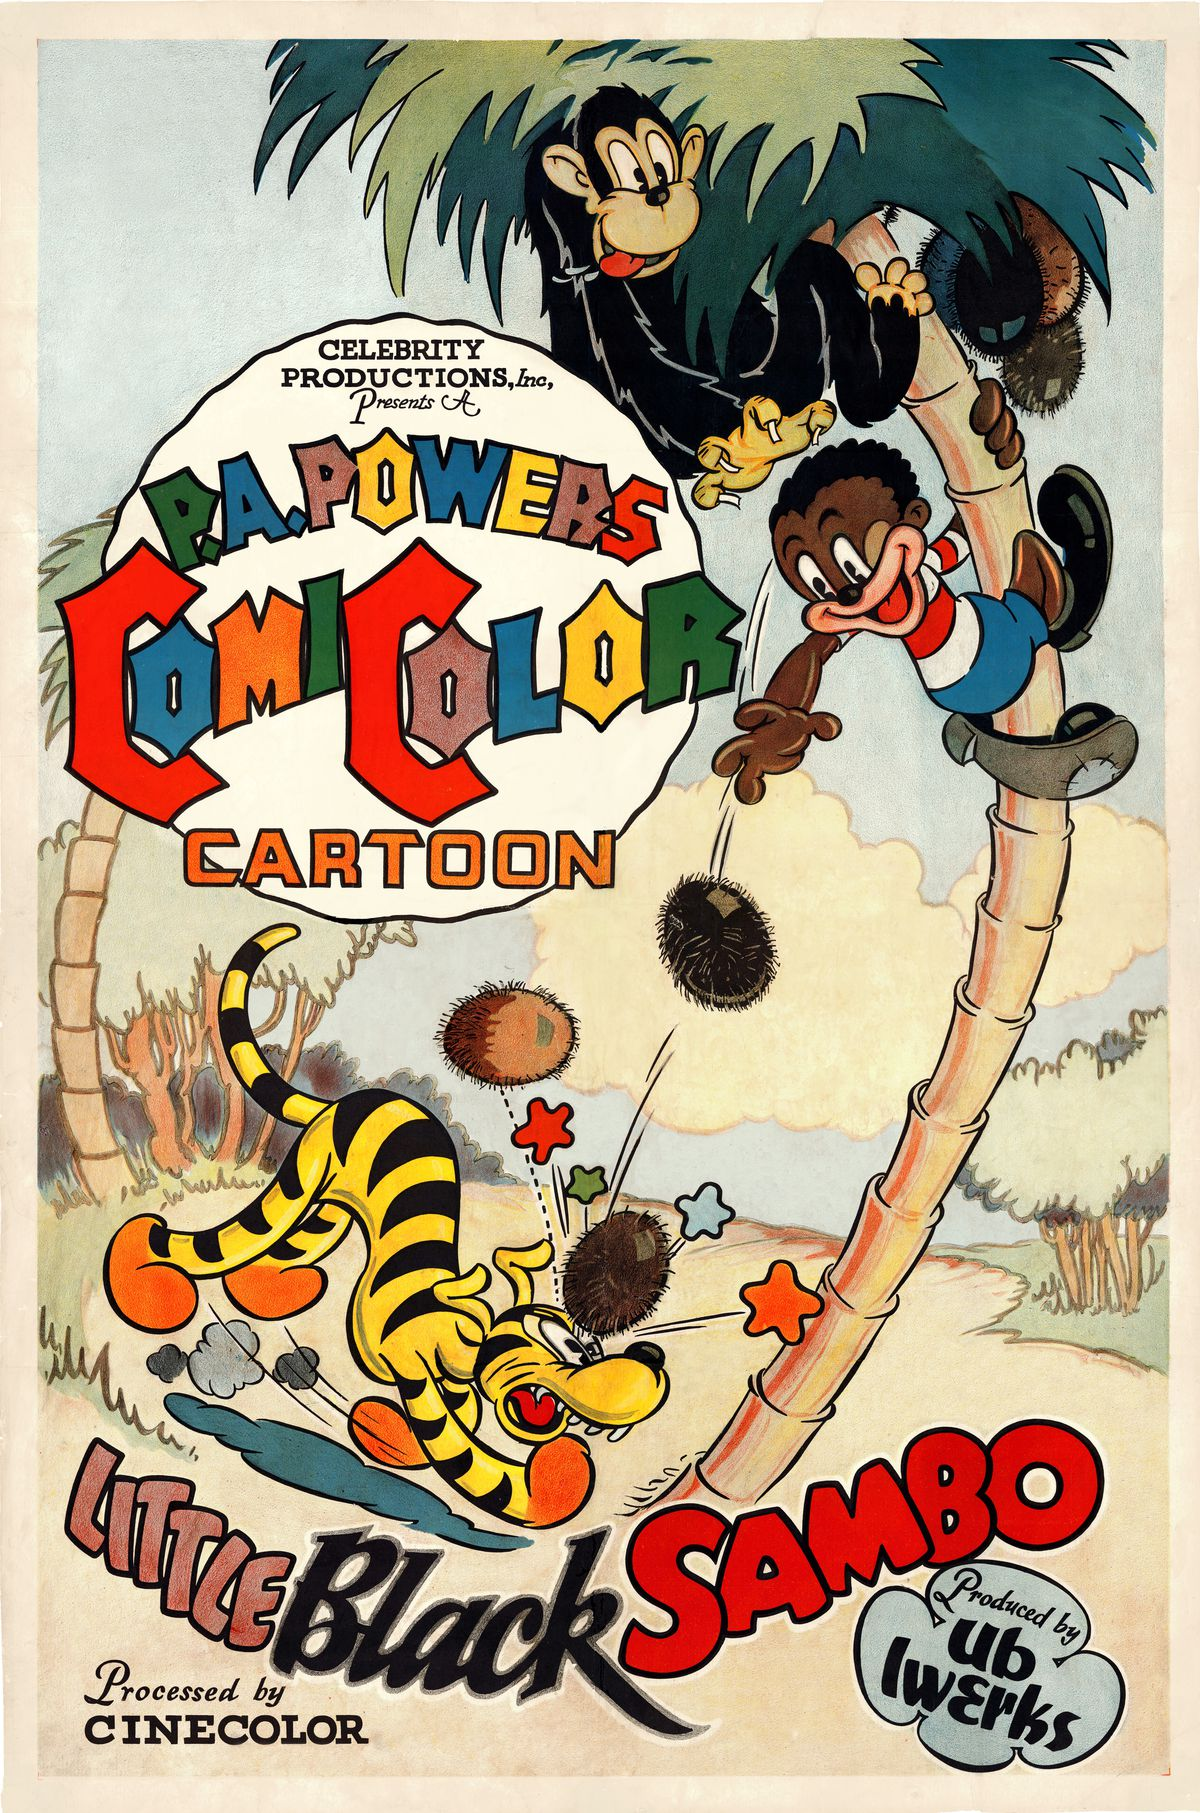 A poster promoting the Little Black Sambo animated cartoon illustrated by Ub Iwerks, 1935.